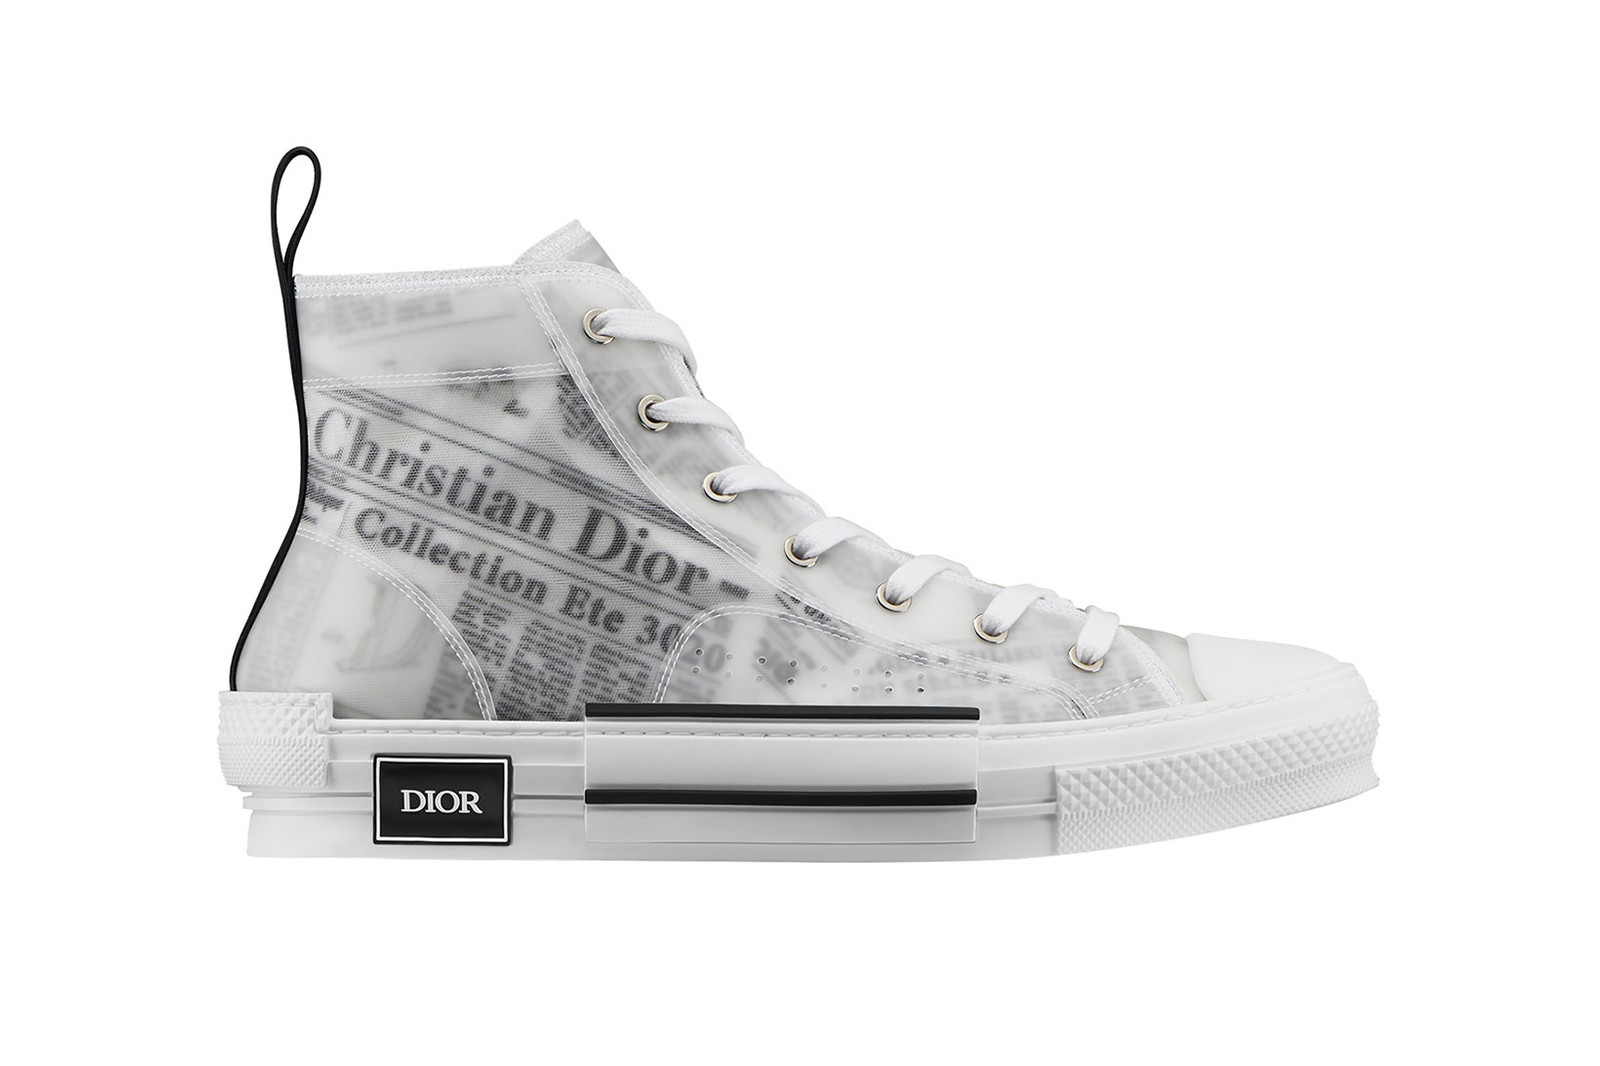 dior newspaper print homme mens kim jones daniel arsham saddle bag b23 sneakers accessories